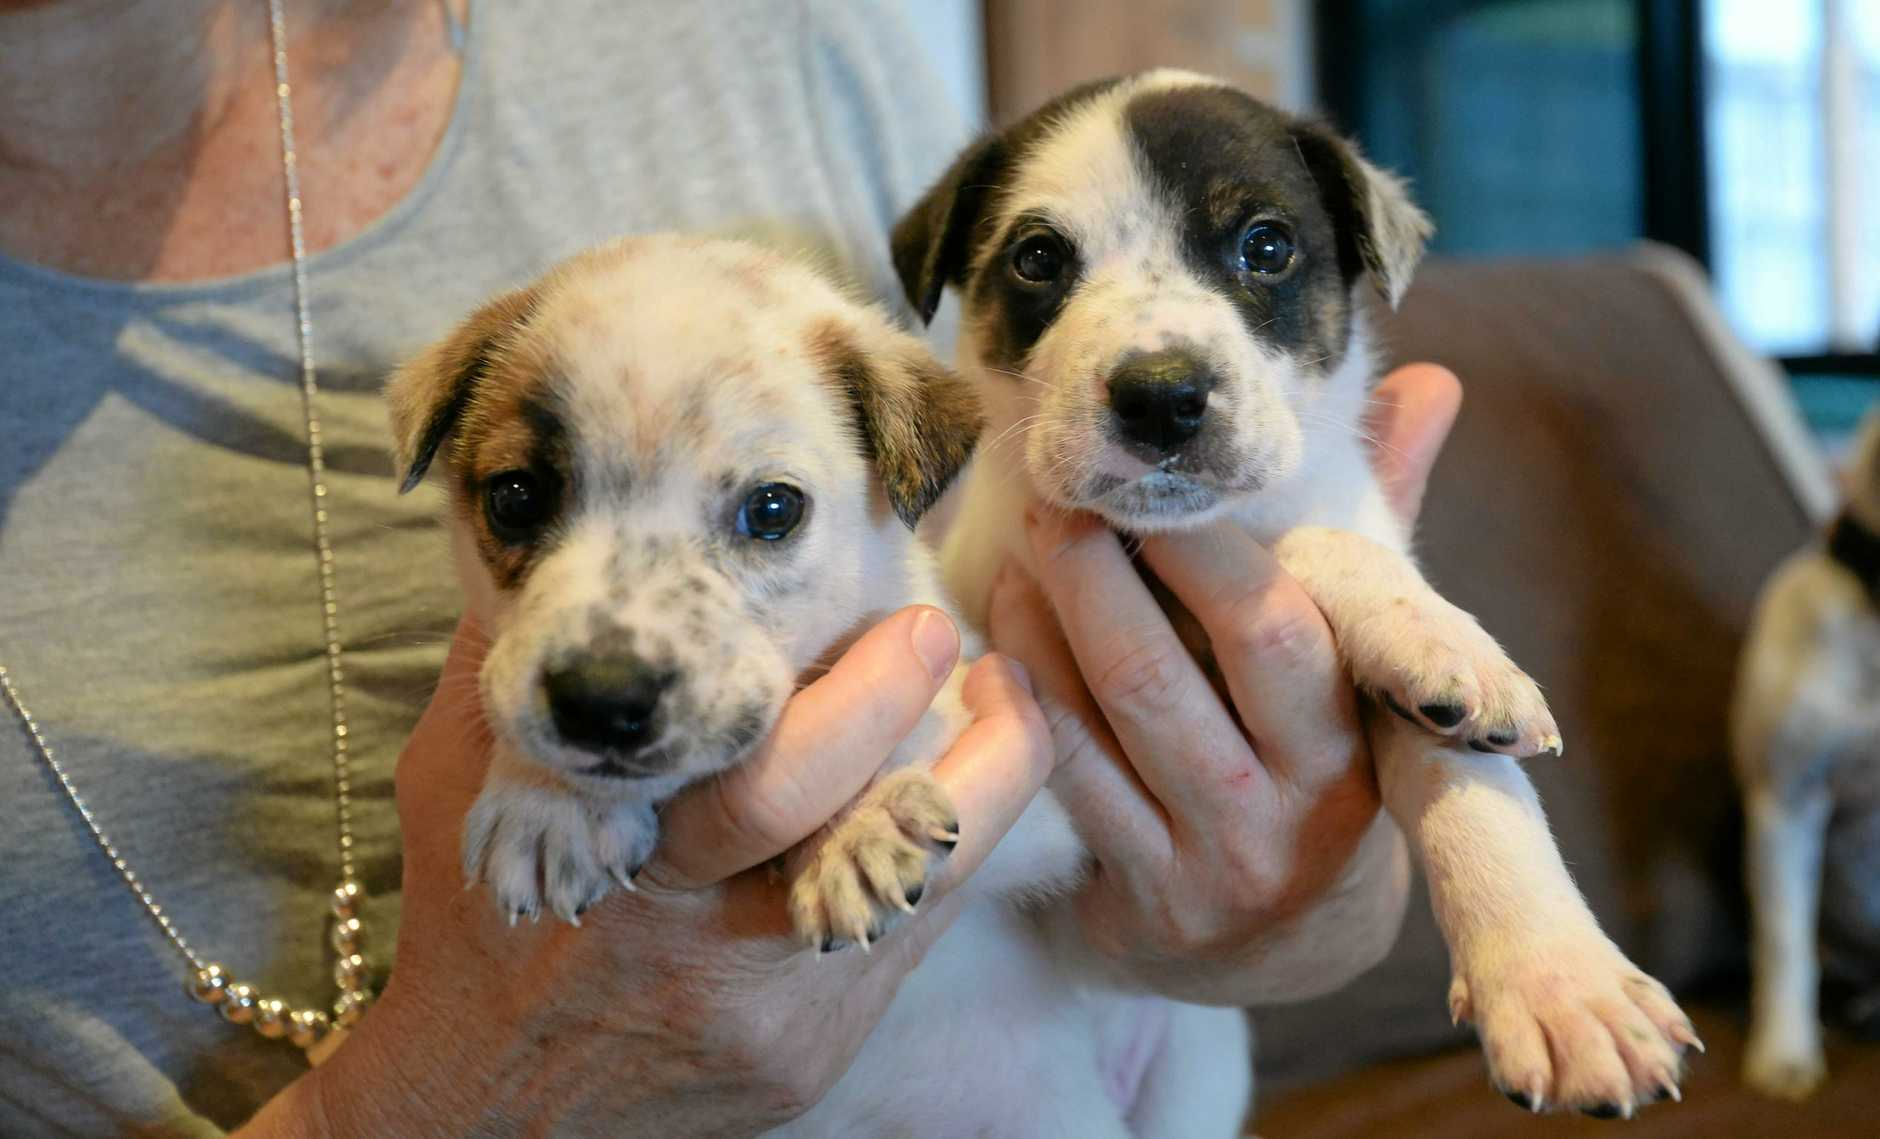 Two surviving puppies.